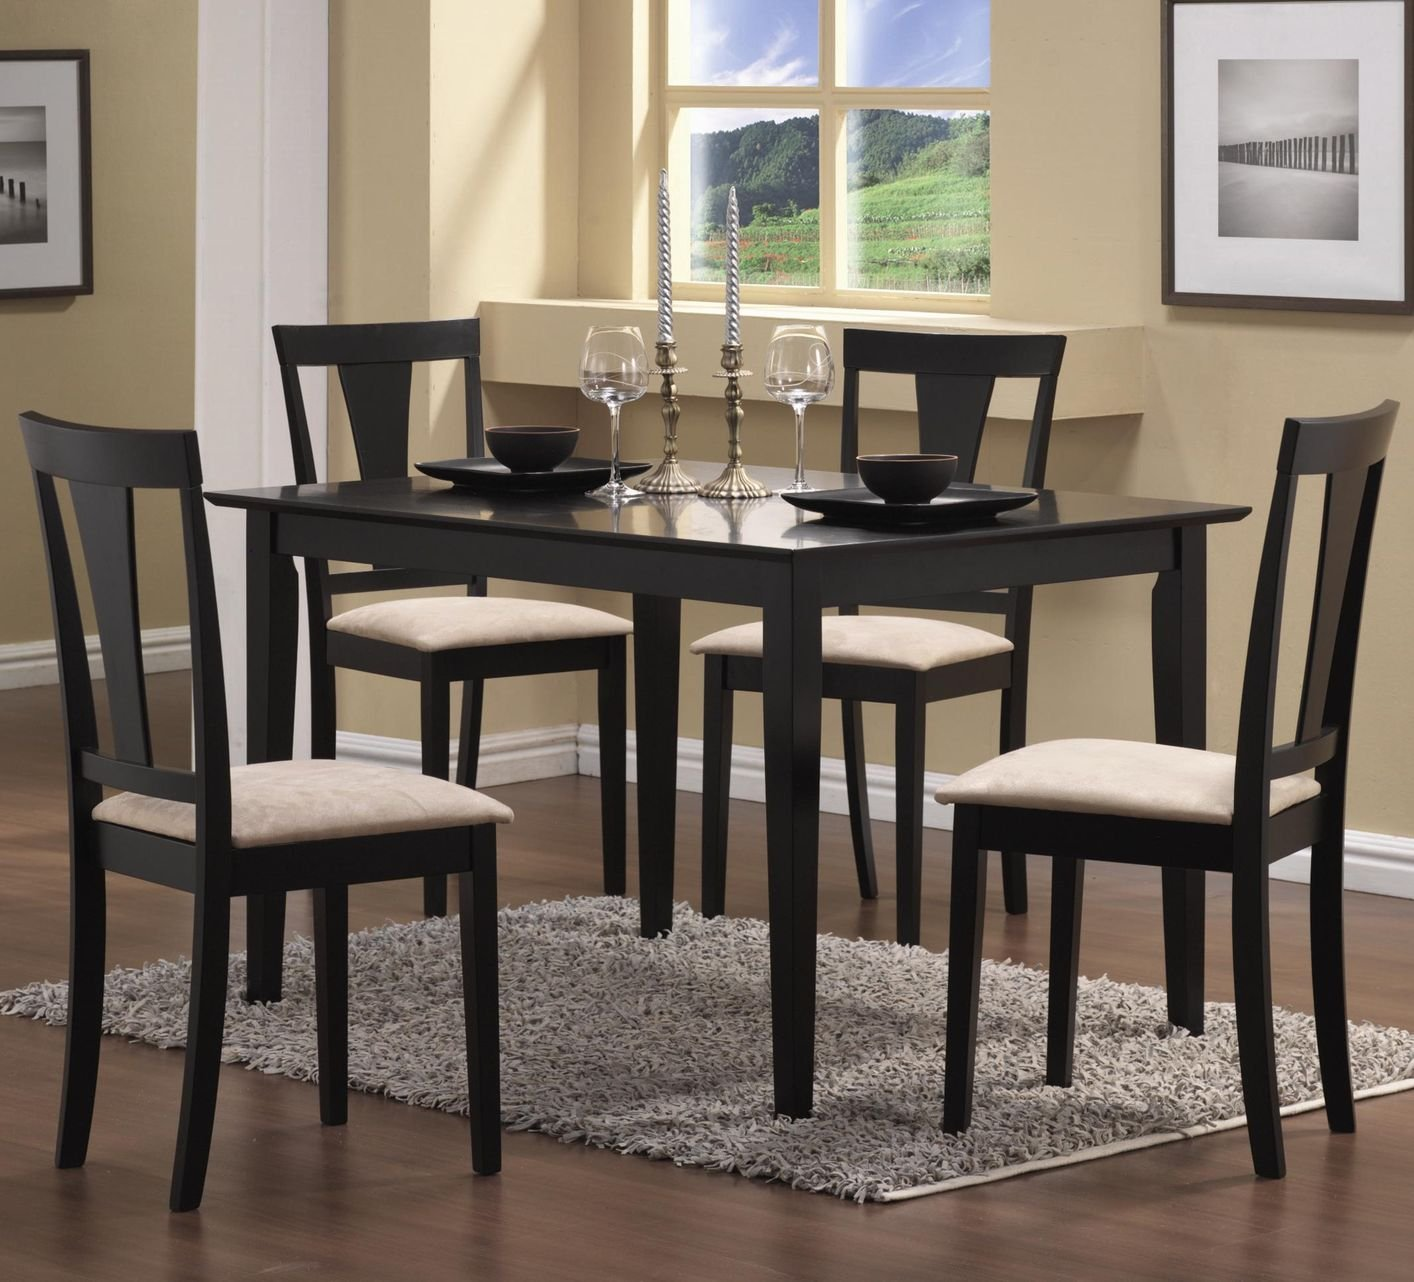 Coaster 150181n black fabric dining table and chair set for Black fabric dining room chairs